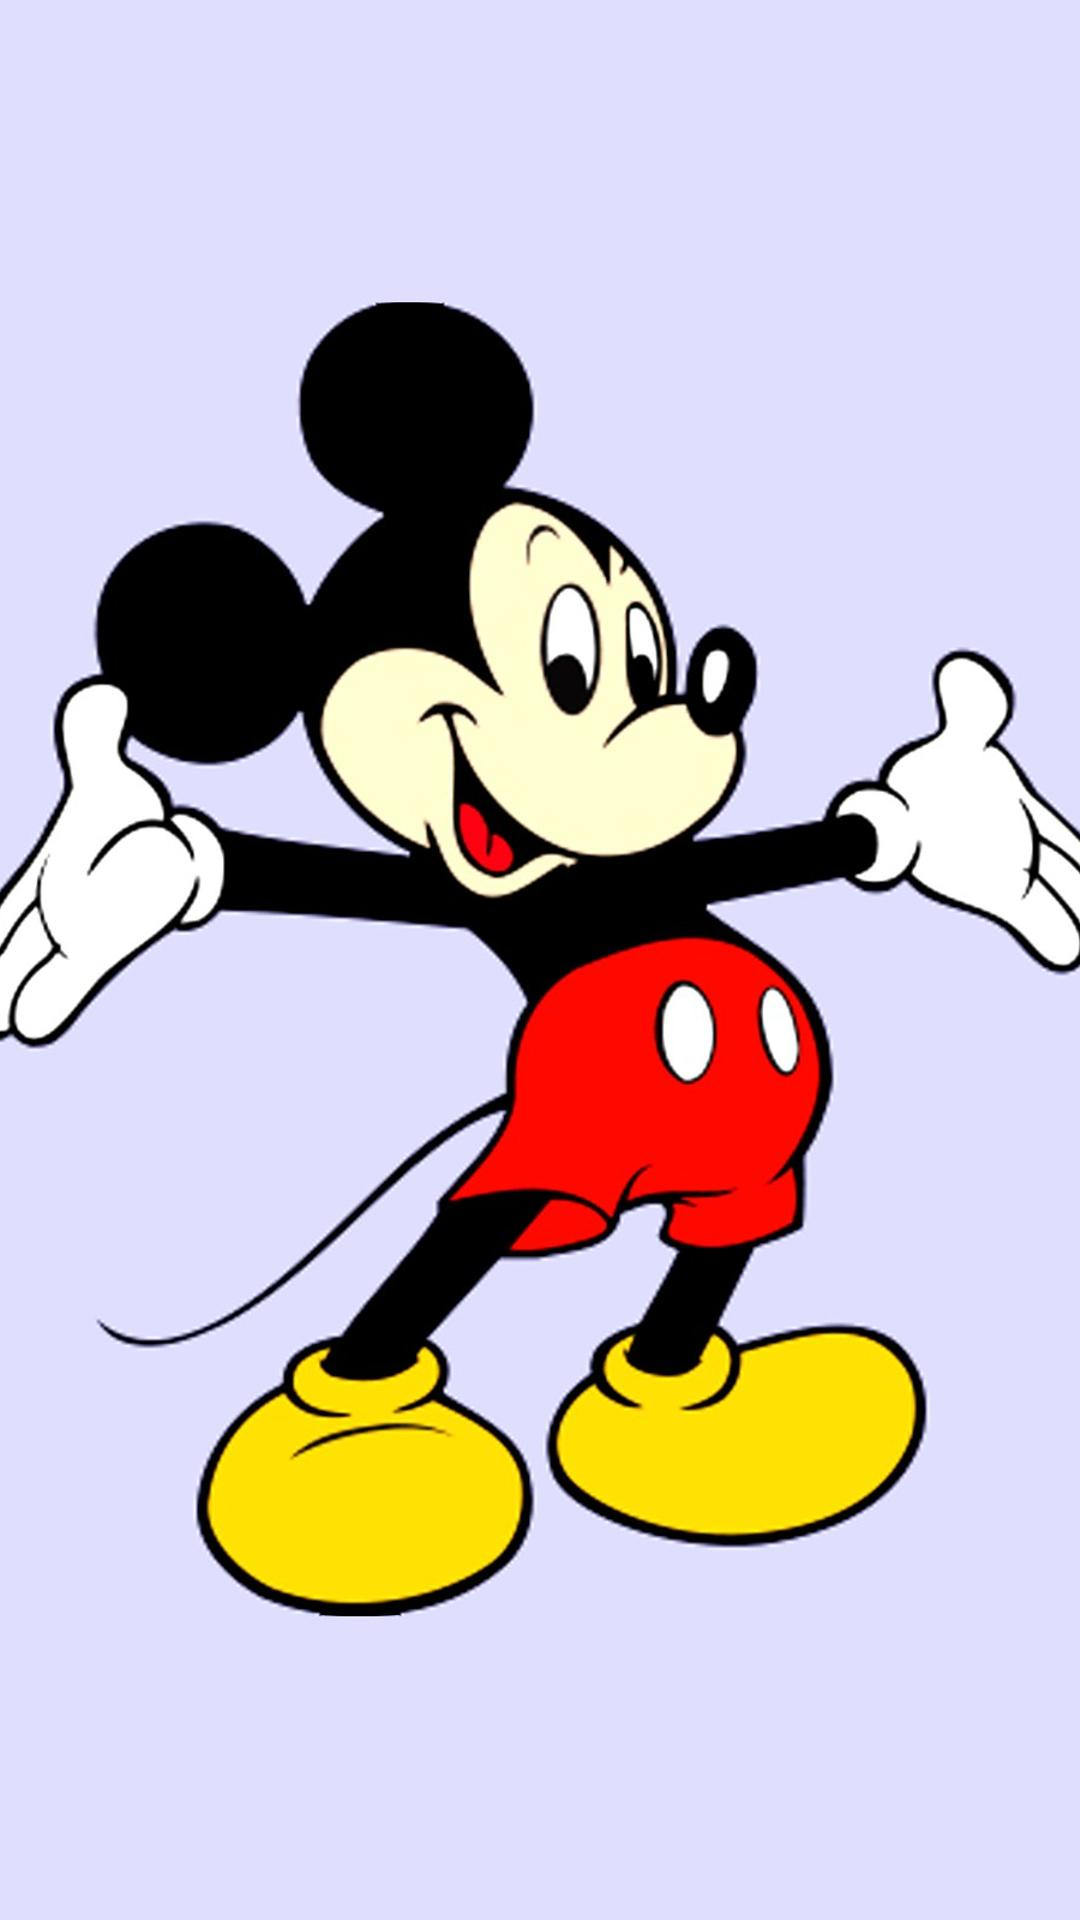 Great Wallpaper Halloween Mickey Mouse - happy-mickey-mouse-anime-wallpaper-1080x1920  Graphic_701330.jpg